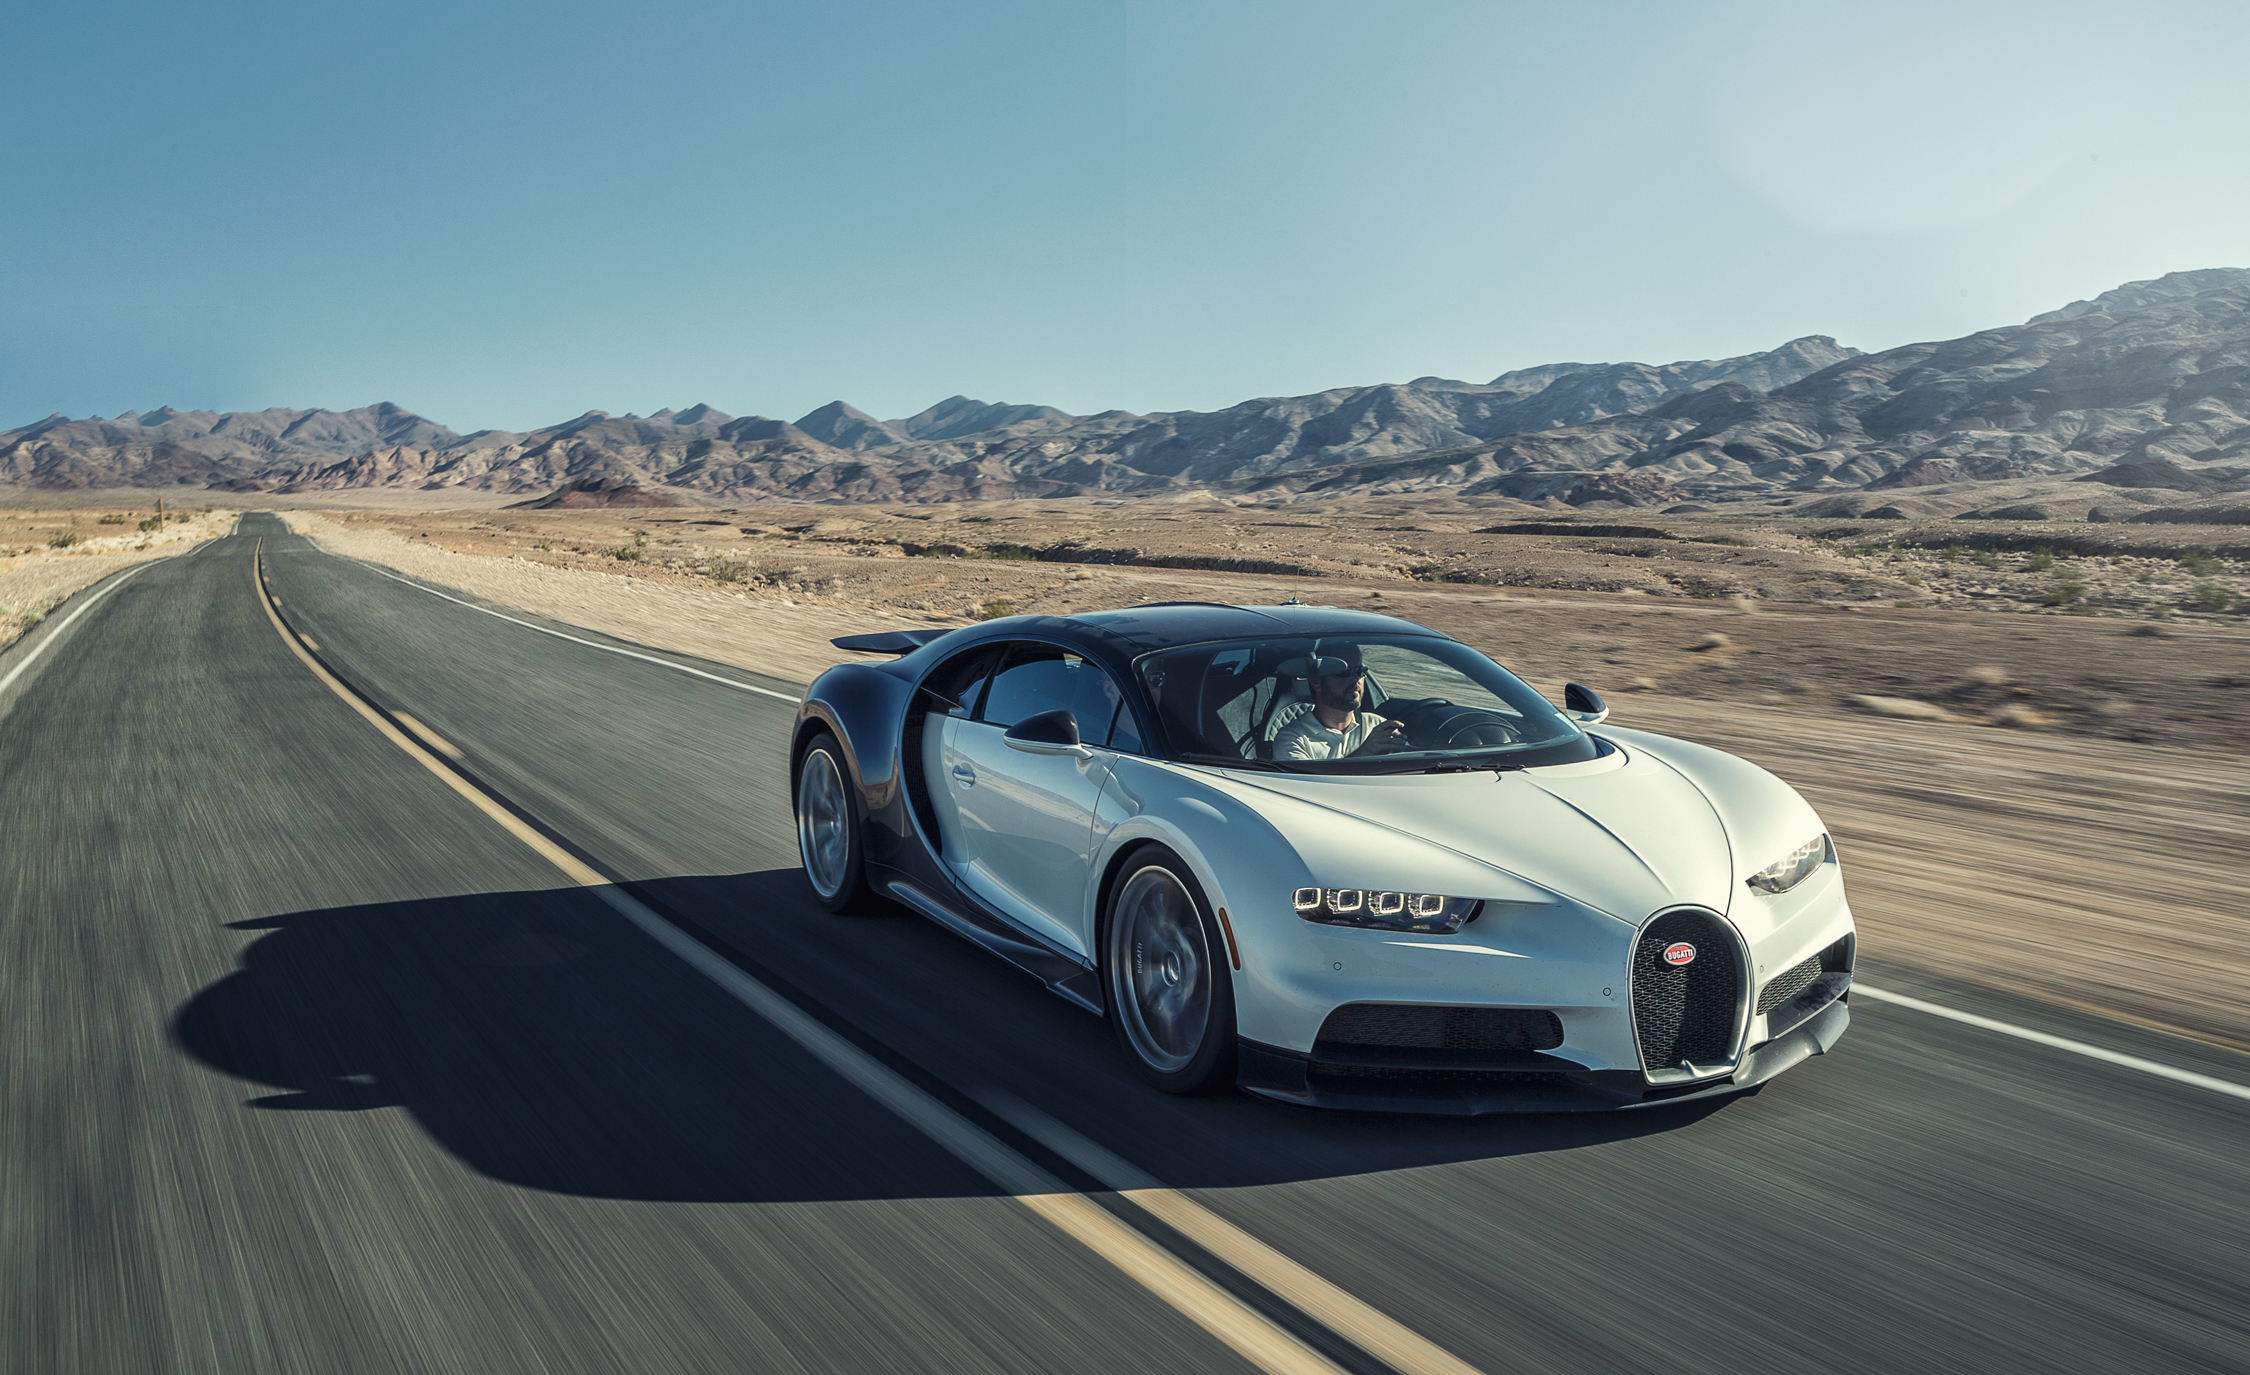 2017 Bugatti Chiron (View 2 of 5)